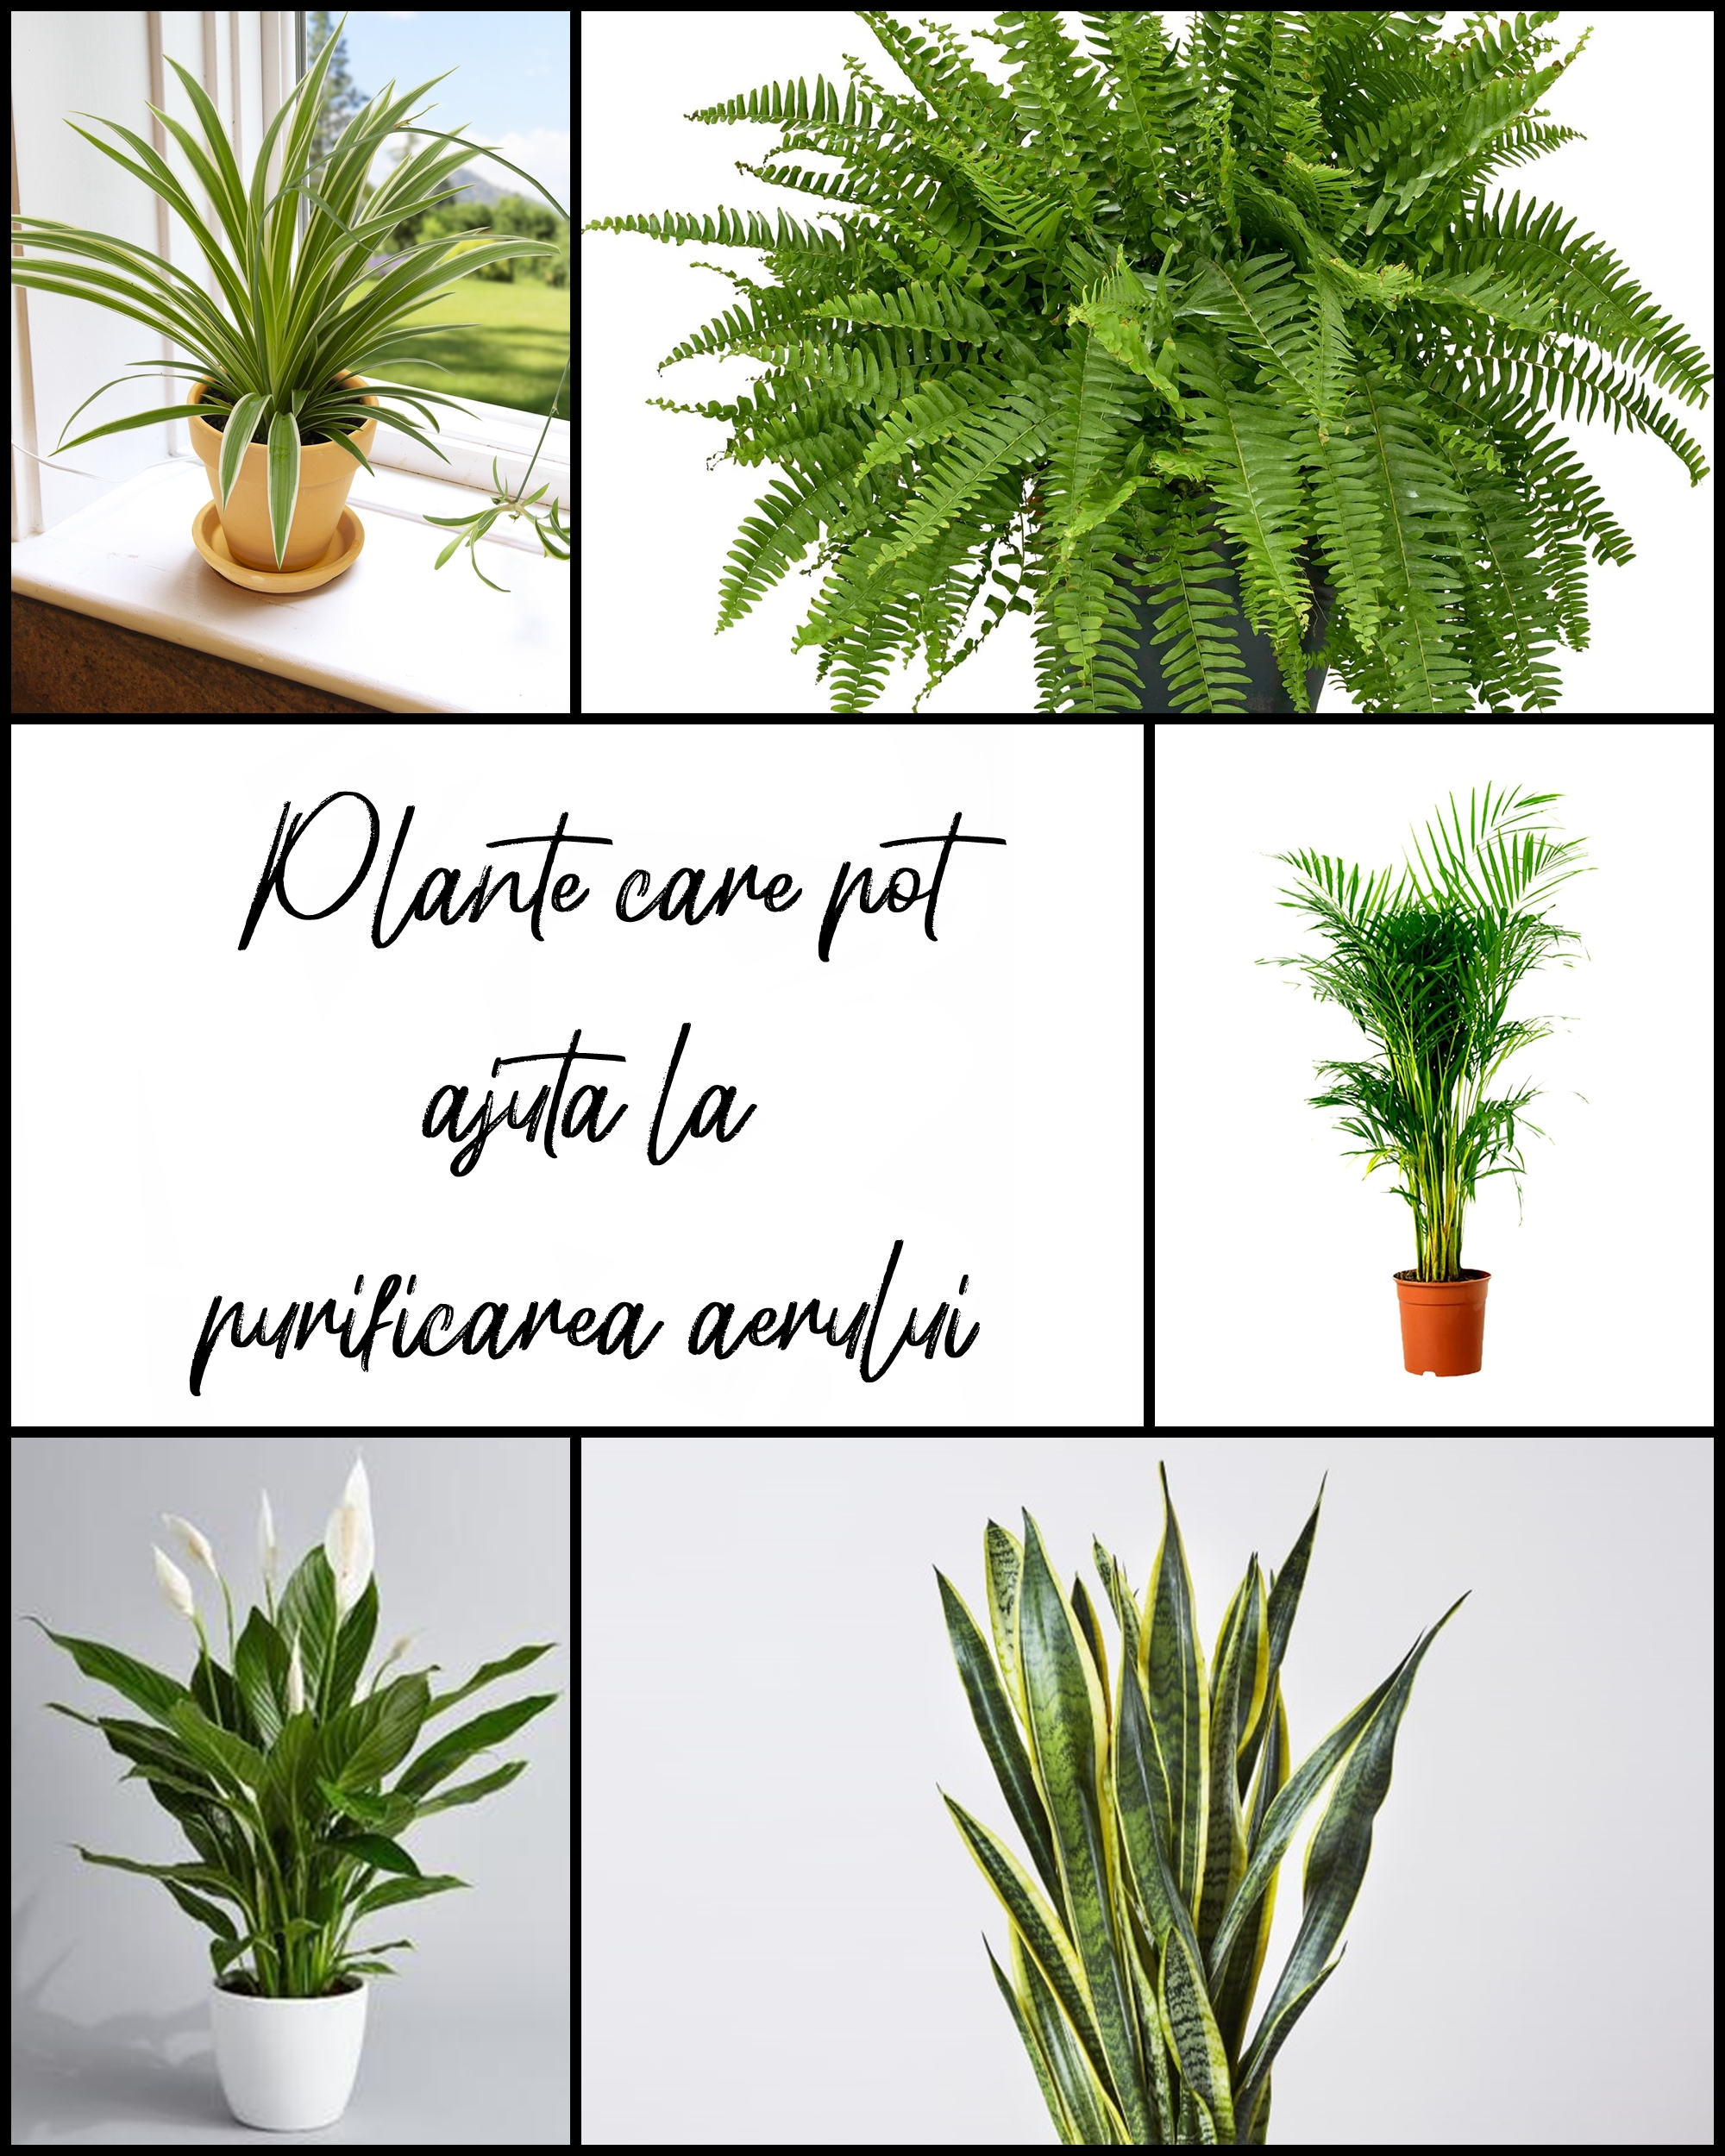 plante care purifica aerul